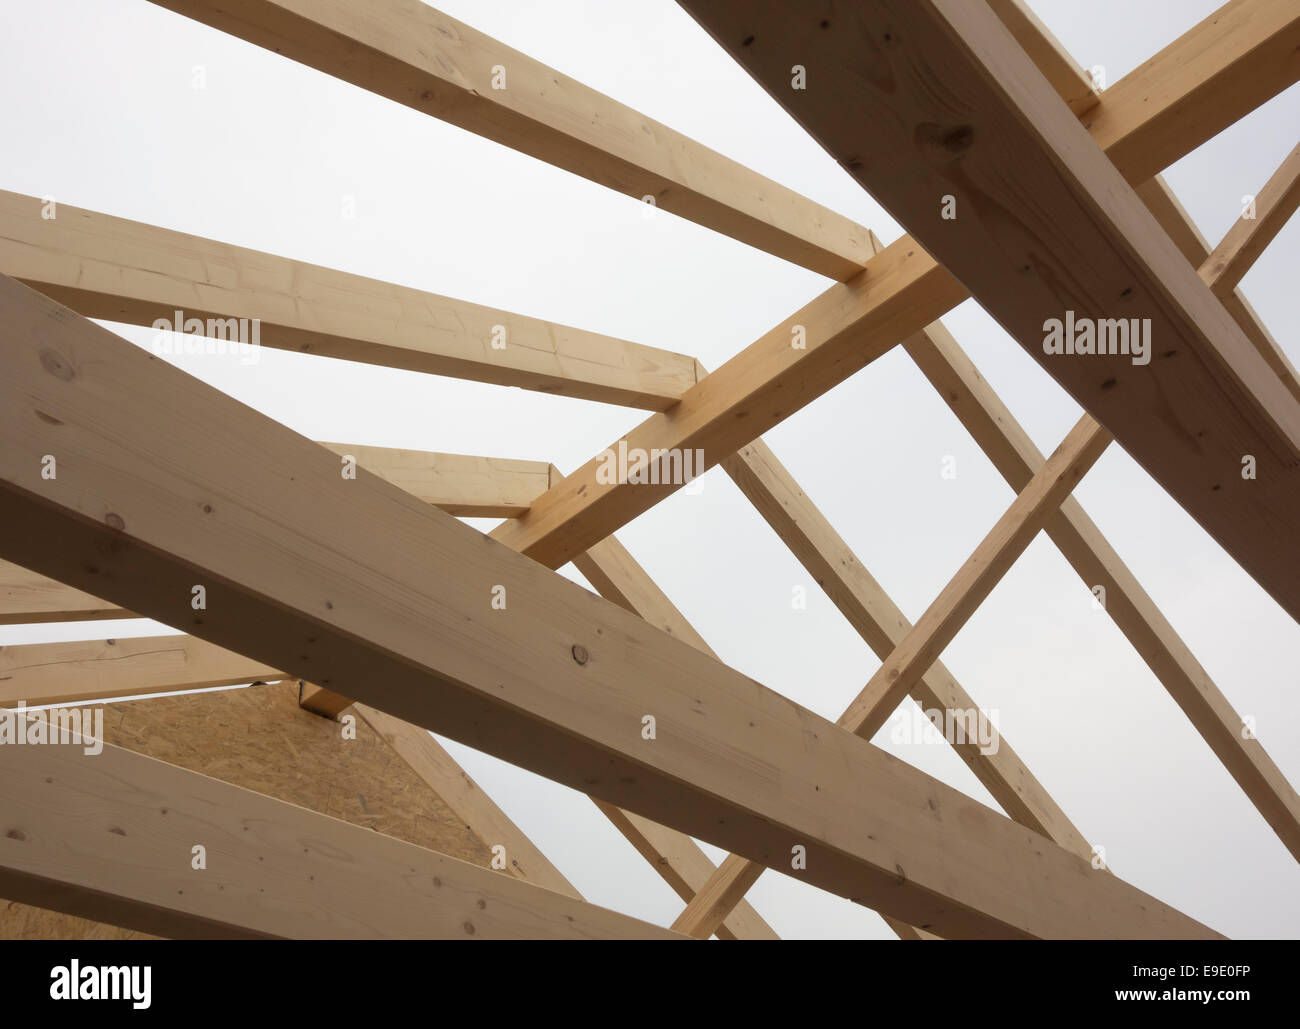 Roof trusses - Stock Image